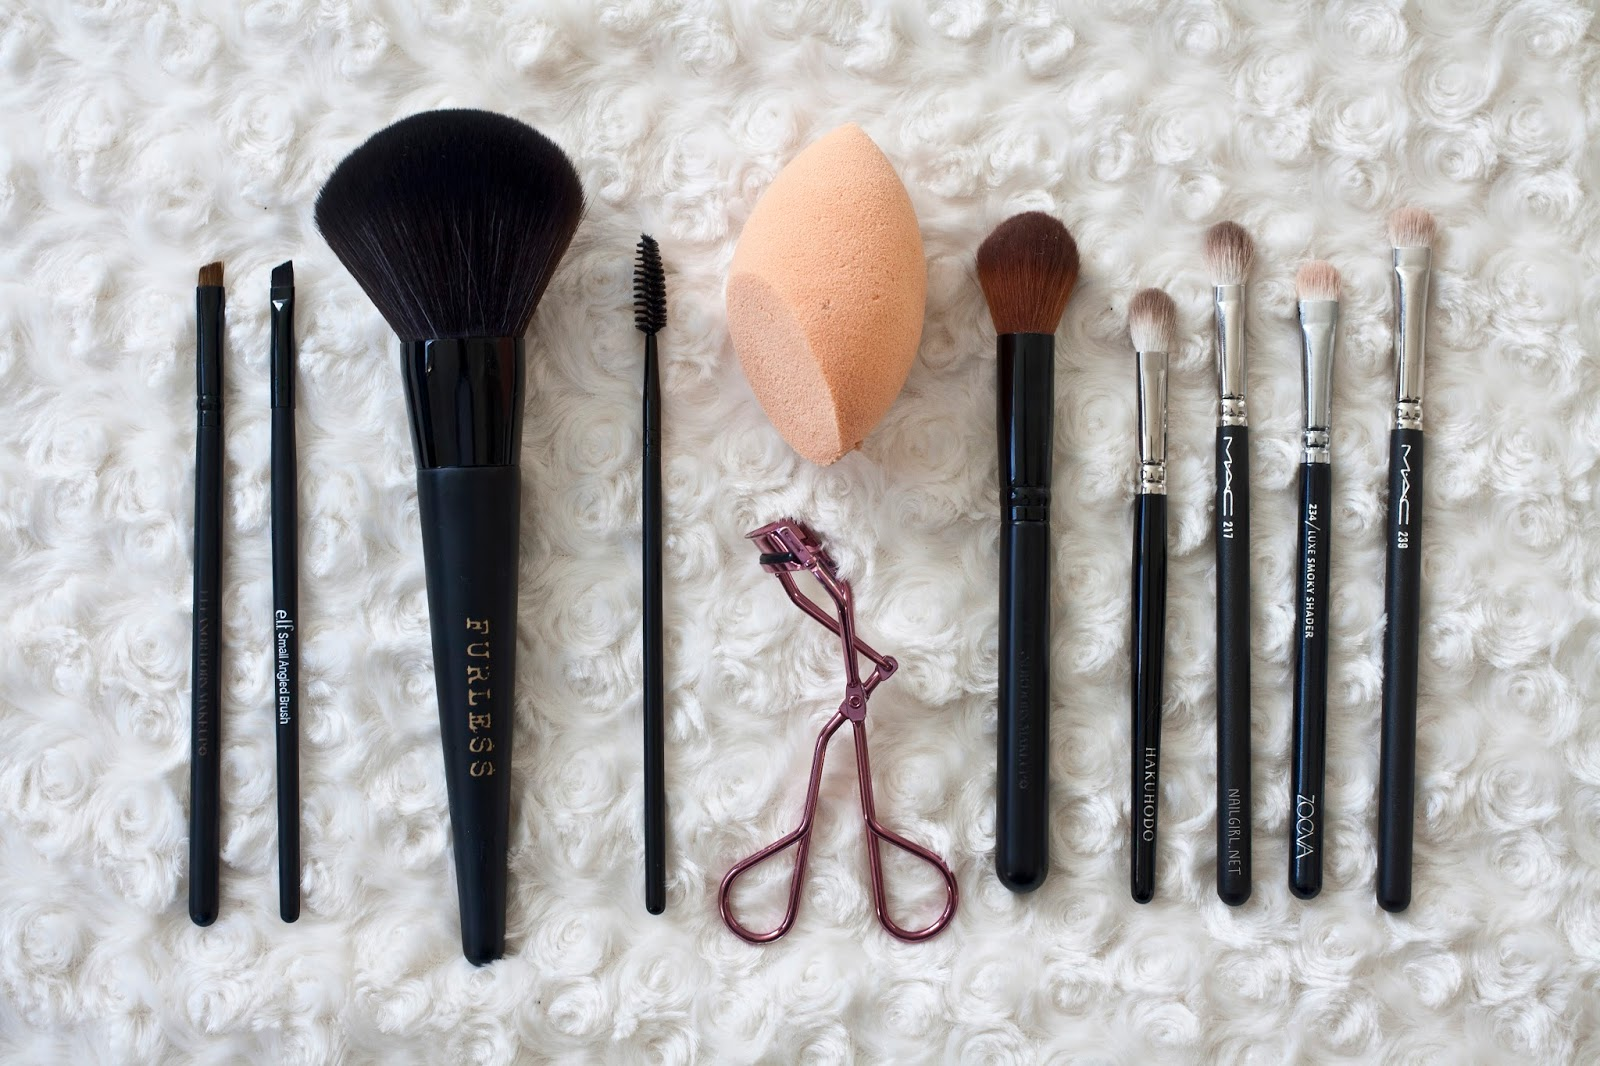 real techniques hakuhodo MAC elf Zoeva makeup brushes za furless cosmetics